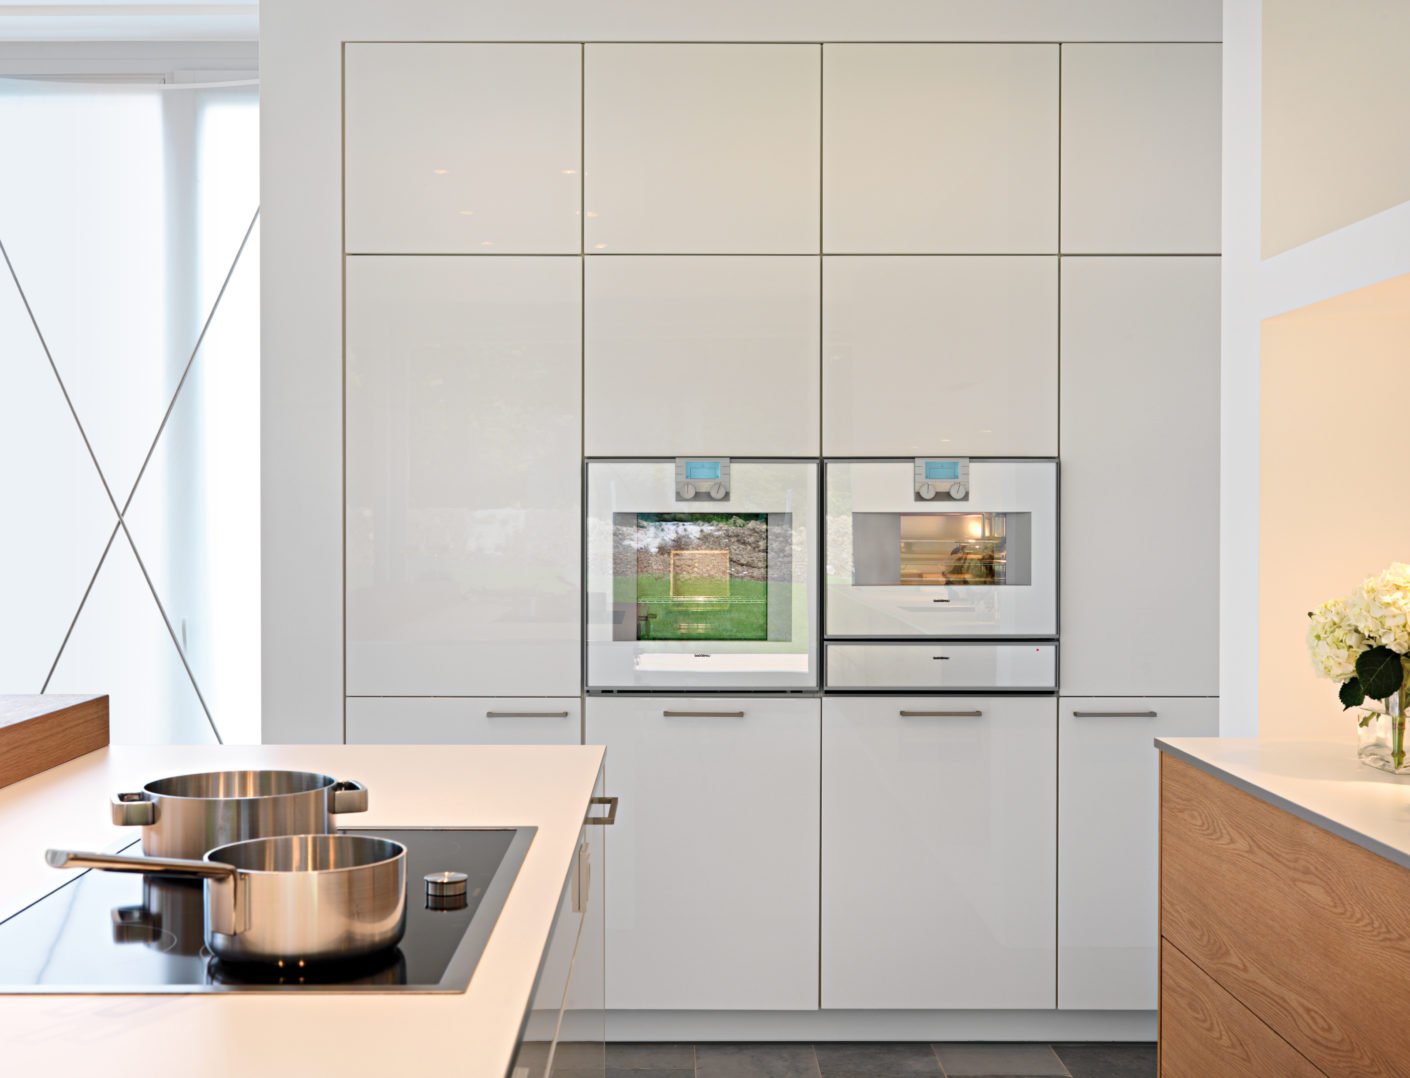 All the electrical appliances are installed flush into the upper row of fitted cupboards or embedded in the masonry to form the kitchen island and create an ergonomic worktop.